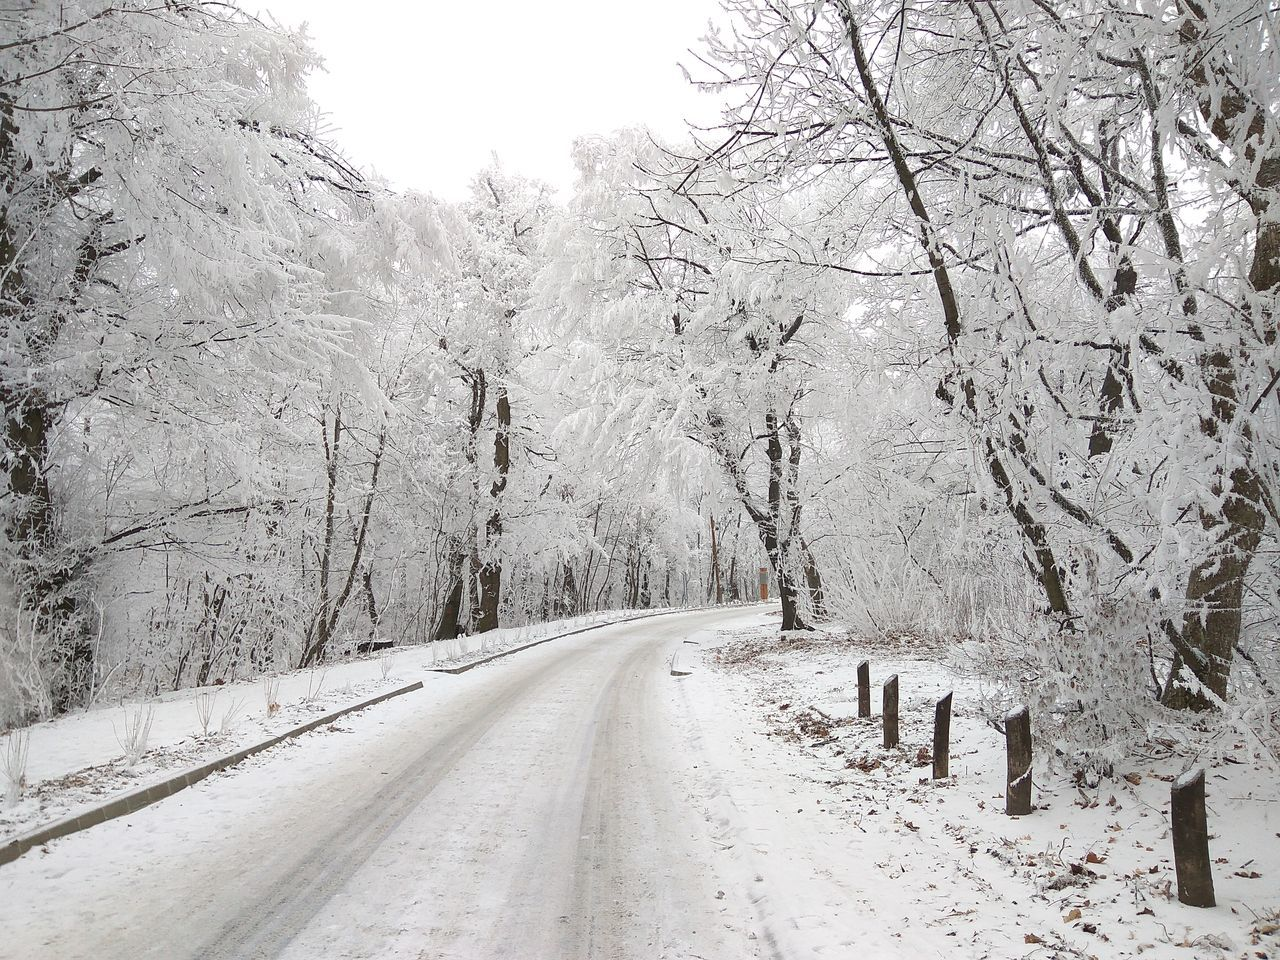 road Cold Temperature Weather Snow Winter Tree The Way Forward Road No People Nature Day Snowing Outdoors Beauty In Nature Hungary Xiaomiphotograph Winter Fog Landscape Normafa